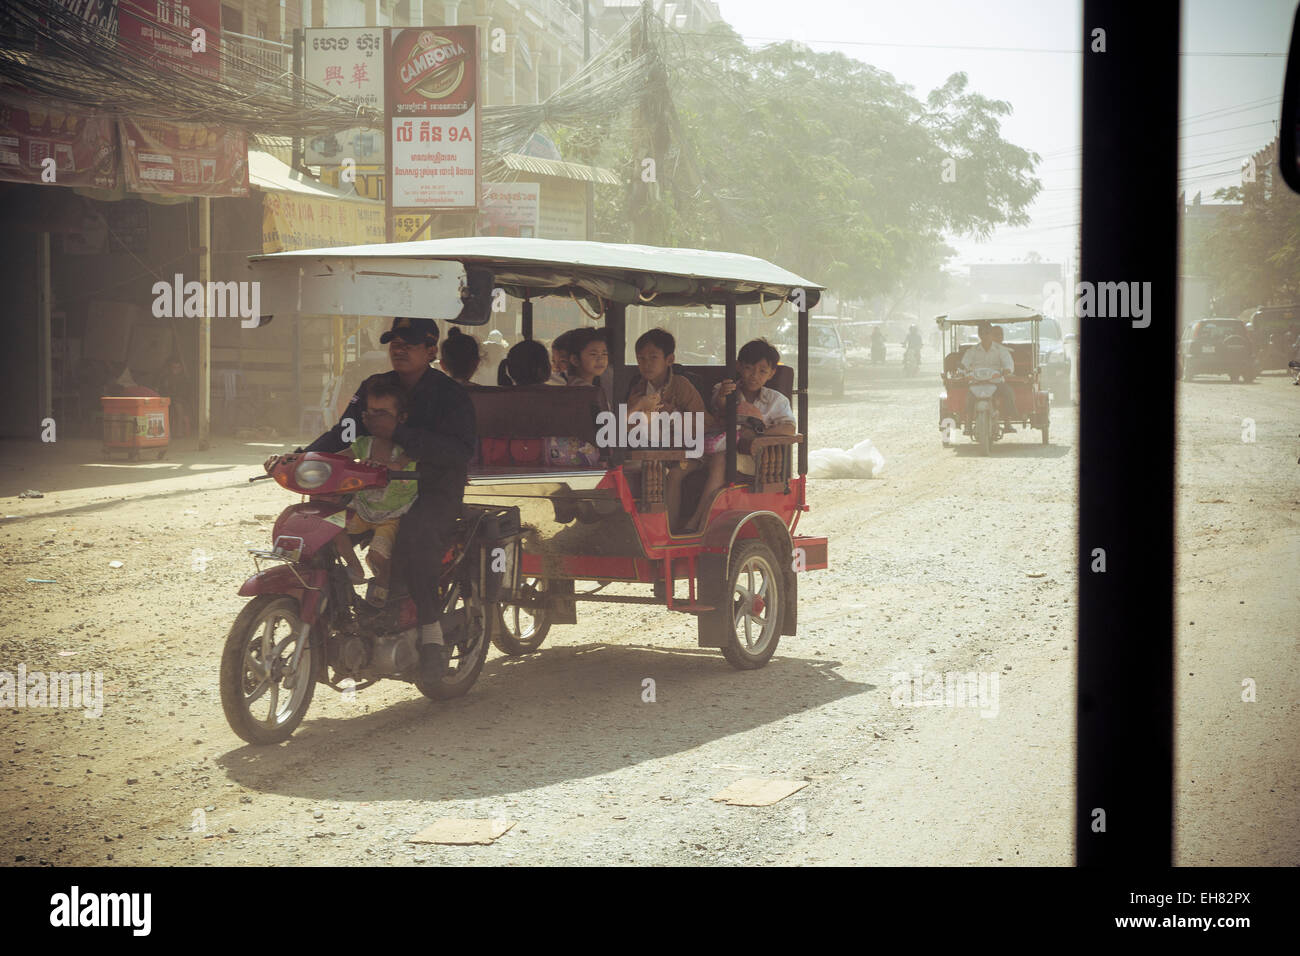 Tuk Tuk ride on a dusty road, Phnom Penh, Cambodia, Indochina, Southeast Asia, Asia - Stock Image